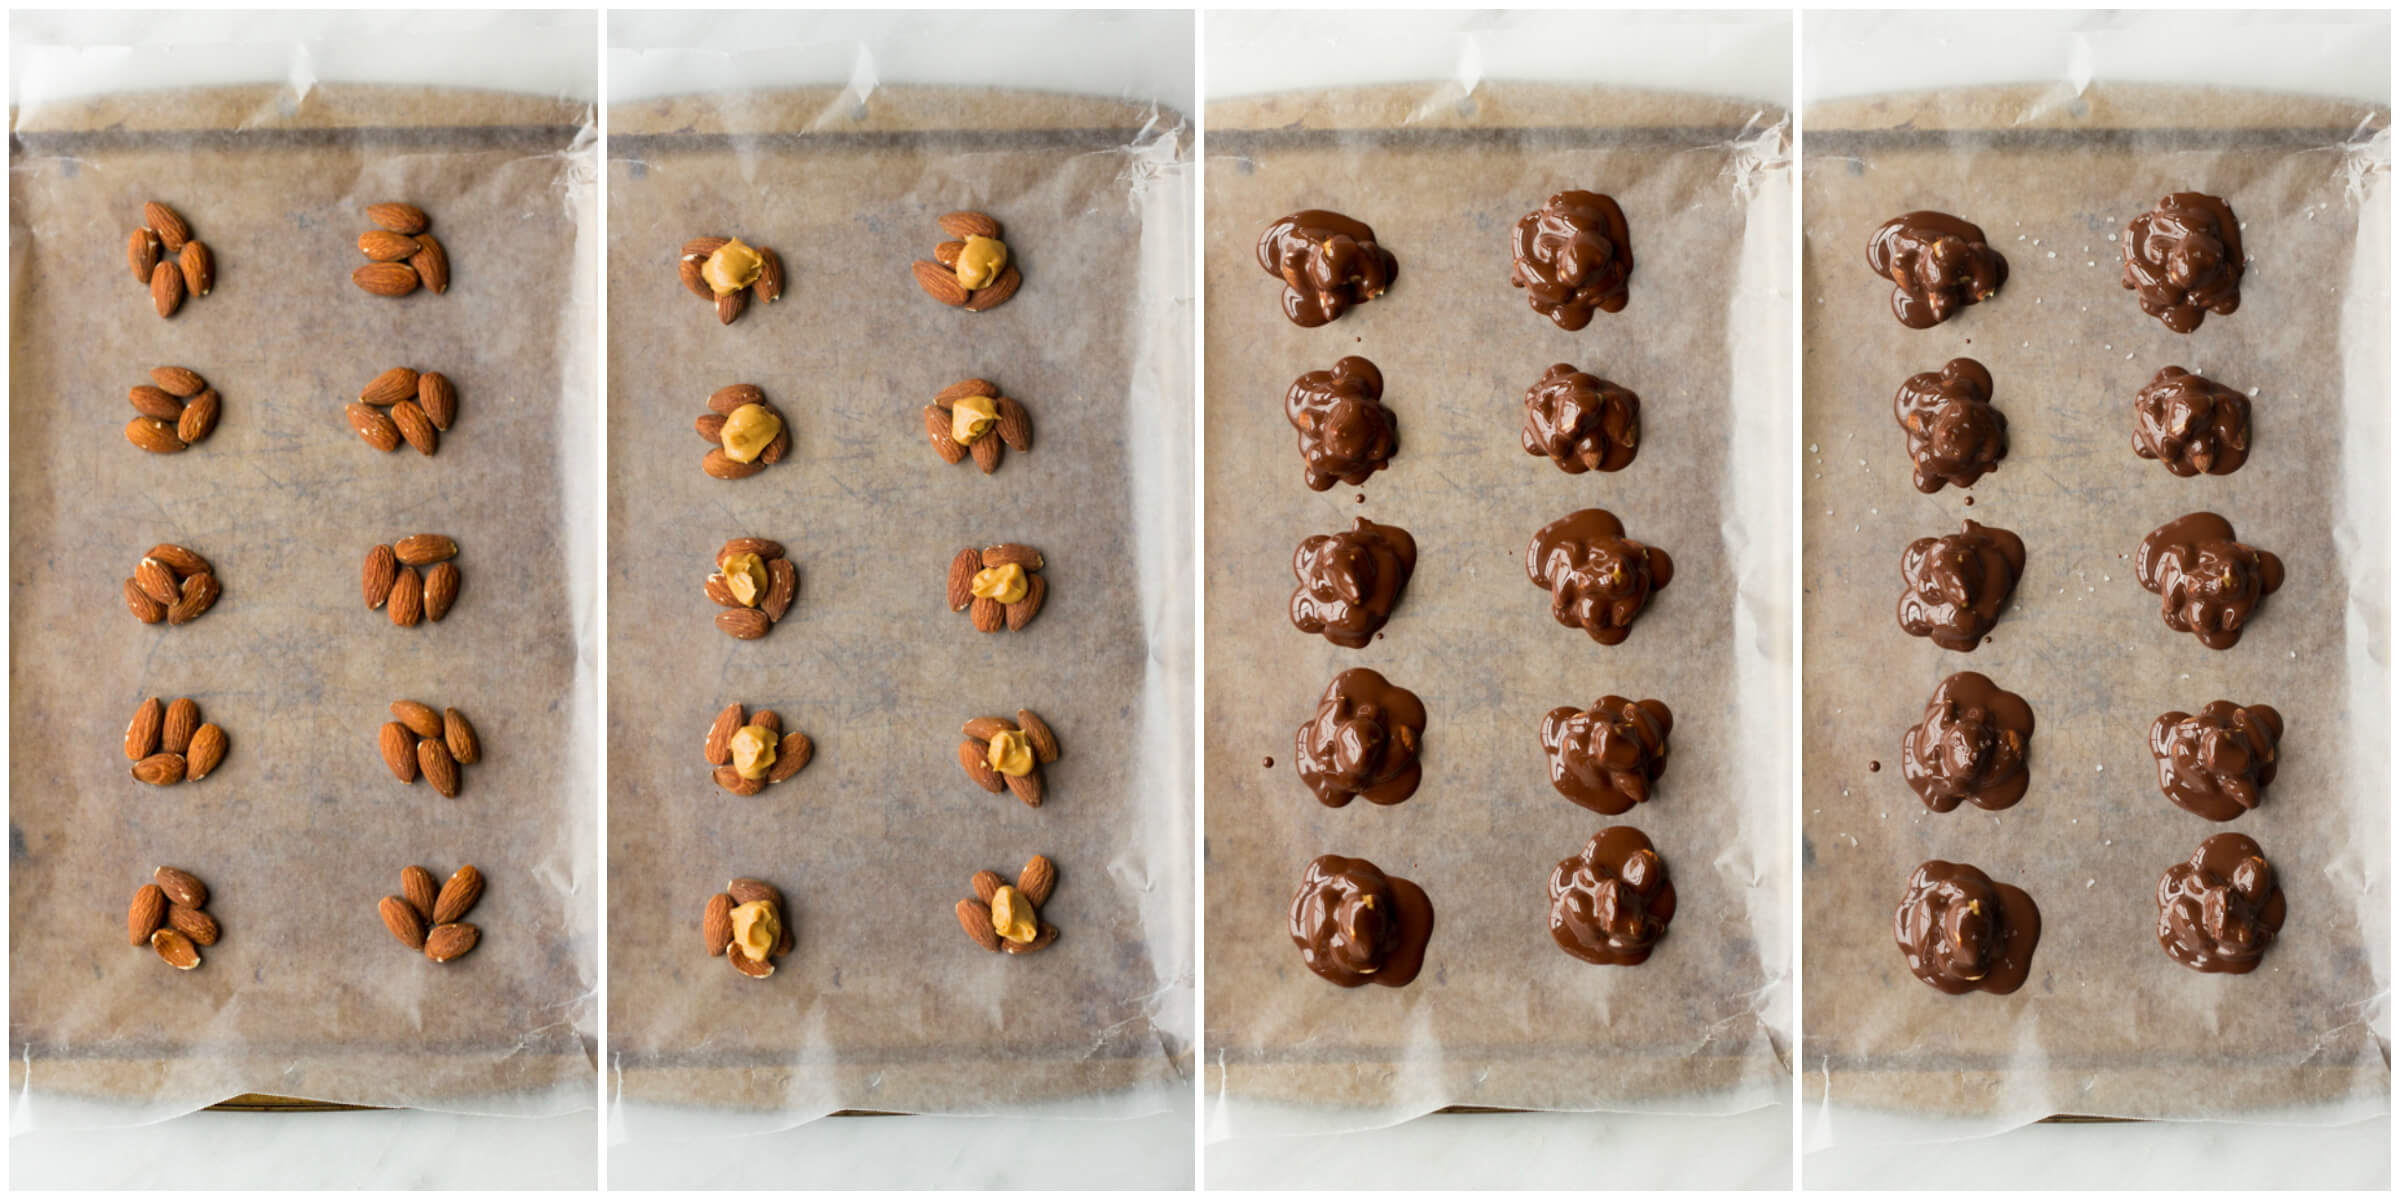 Peanut Butter and Chocolate Almond Clusters with Sea Salt - only 4 ingredients and no baking involved! | littlebroken.com @littlebroken